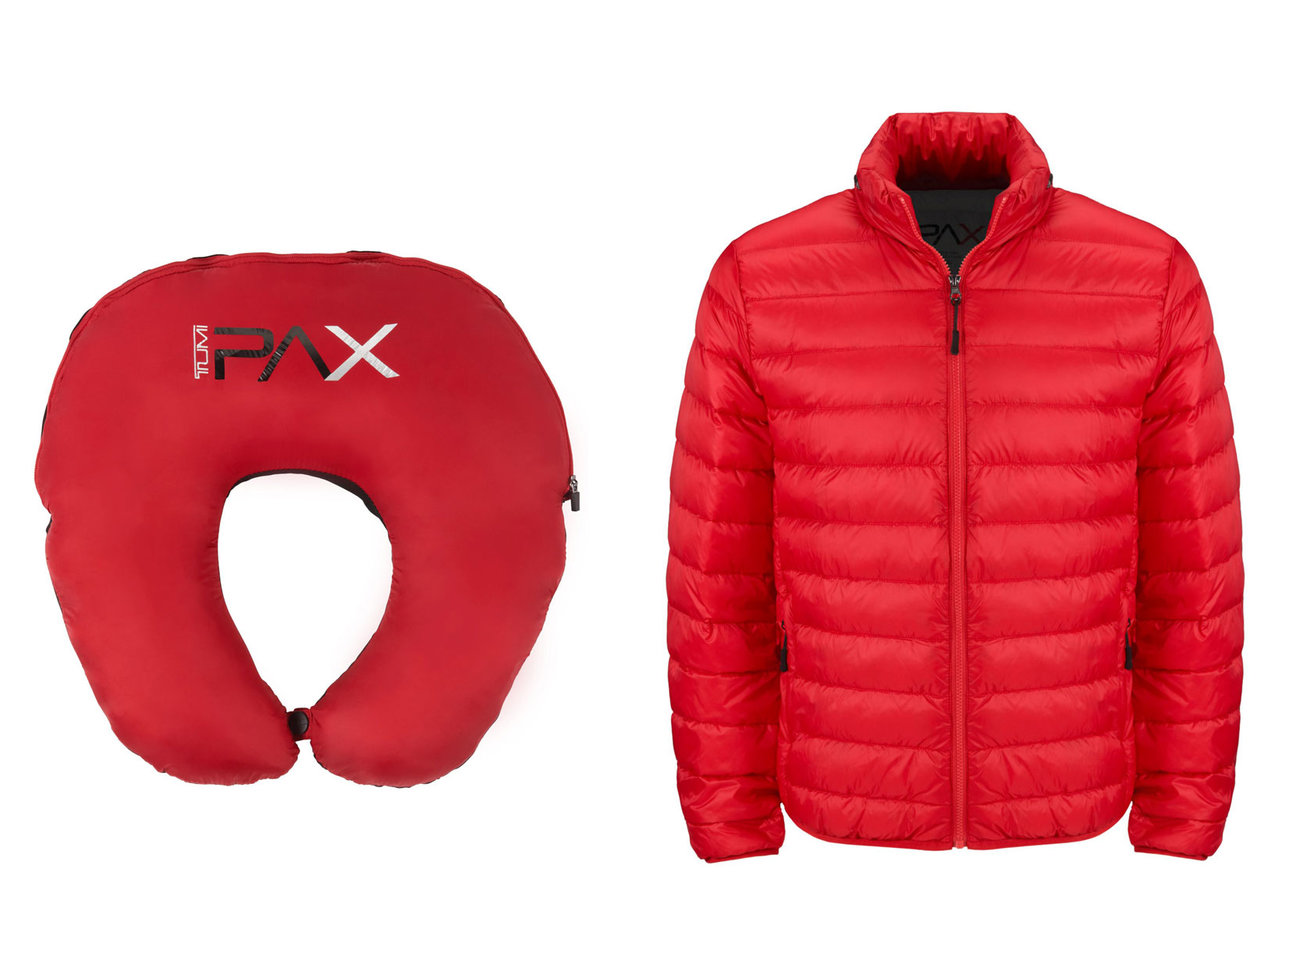 Tumi-Jacket-Neck-Pillow-Road-Sleep-PRODUCTS0316.jpg